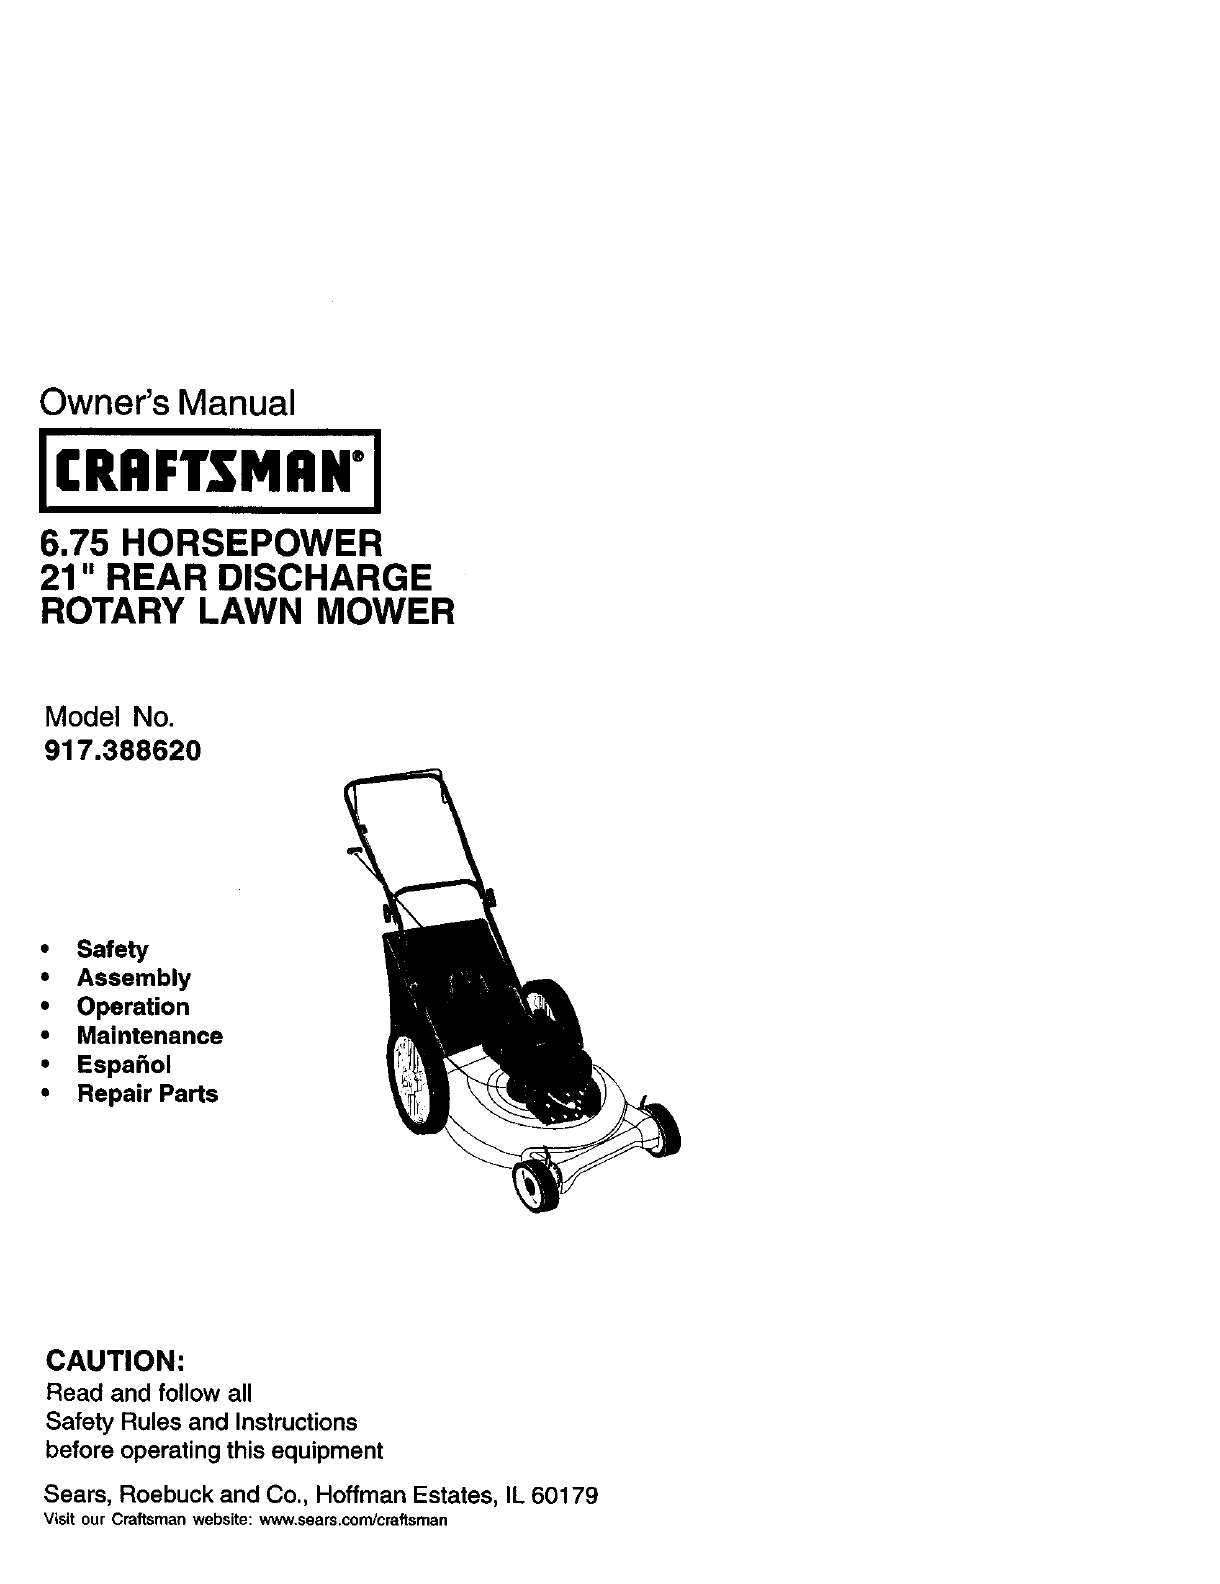 Craftsman Lawn Mower 917.38862 User Guide